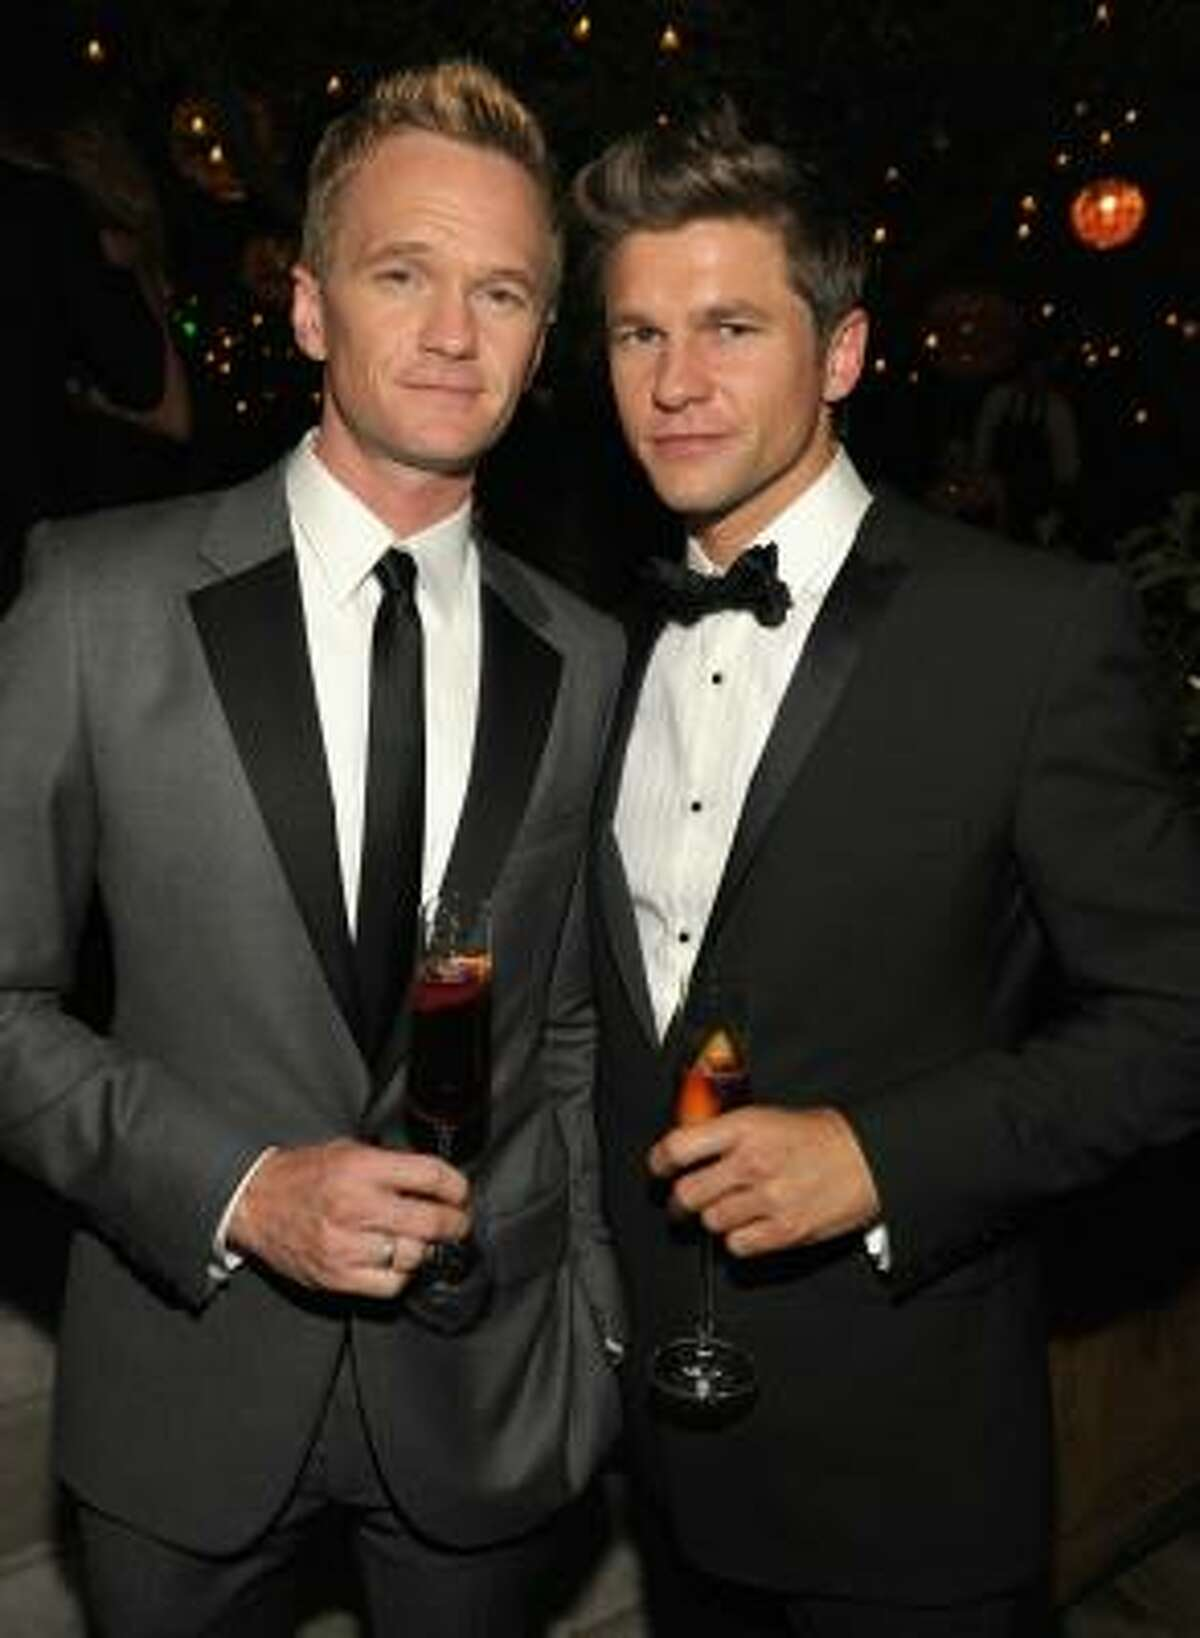 Neil Patrick Harris and his partner David Burtka are proud parents of twins, a boy and a girl.